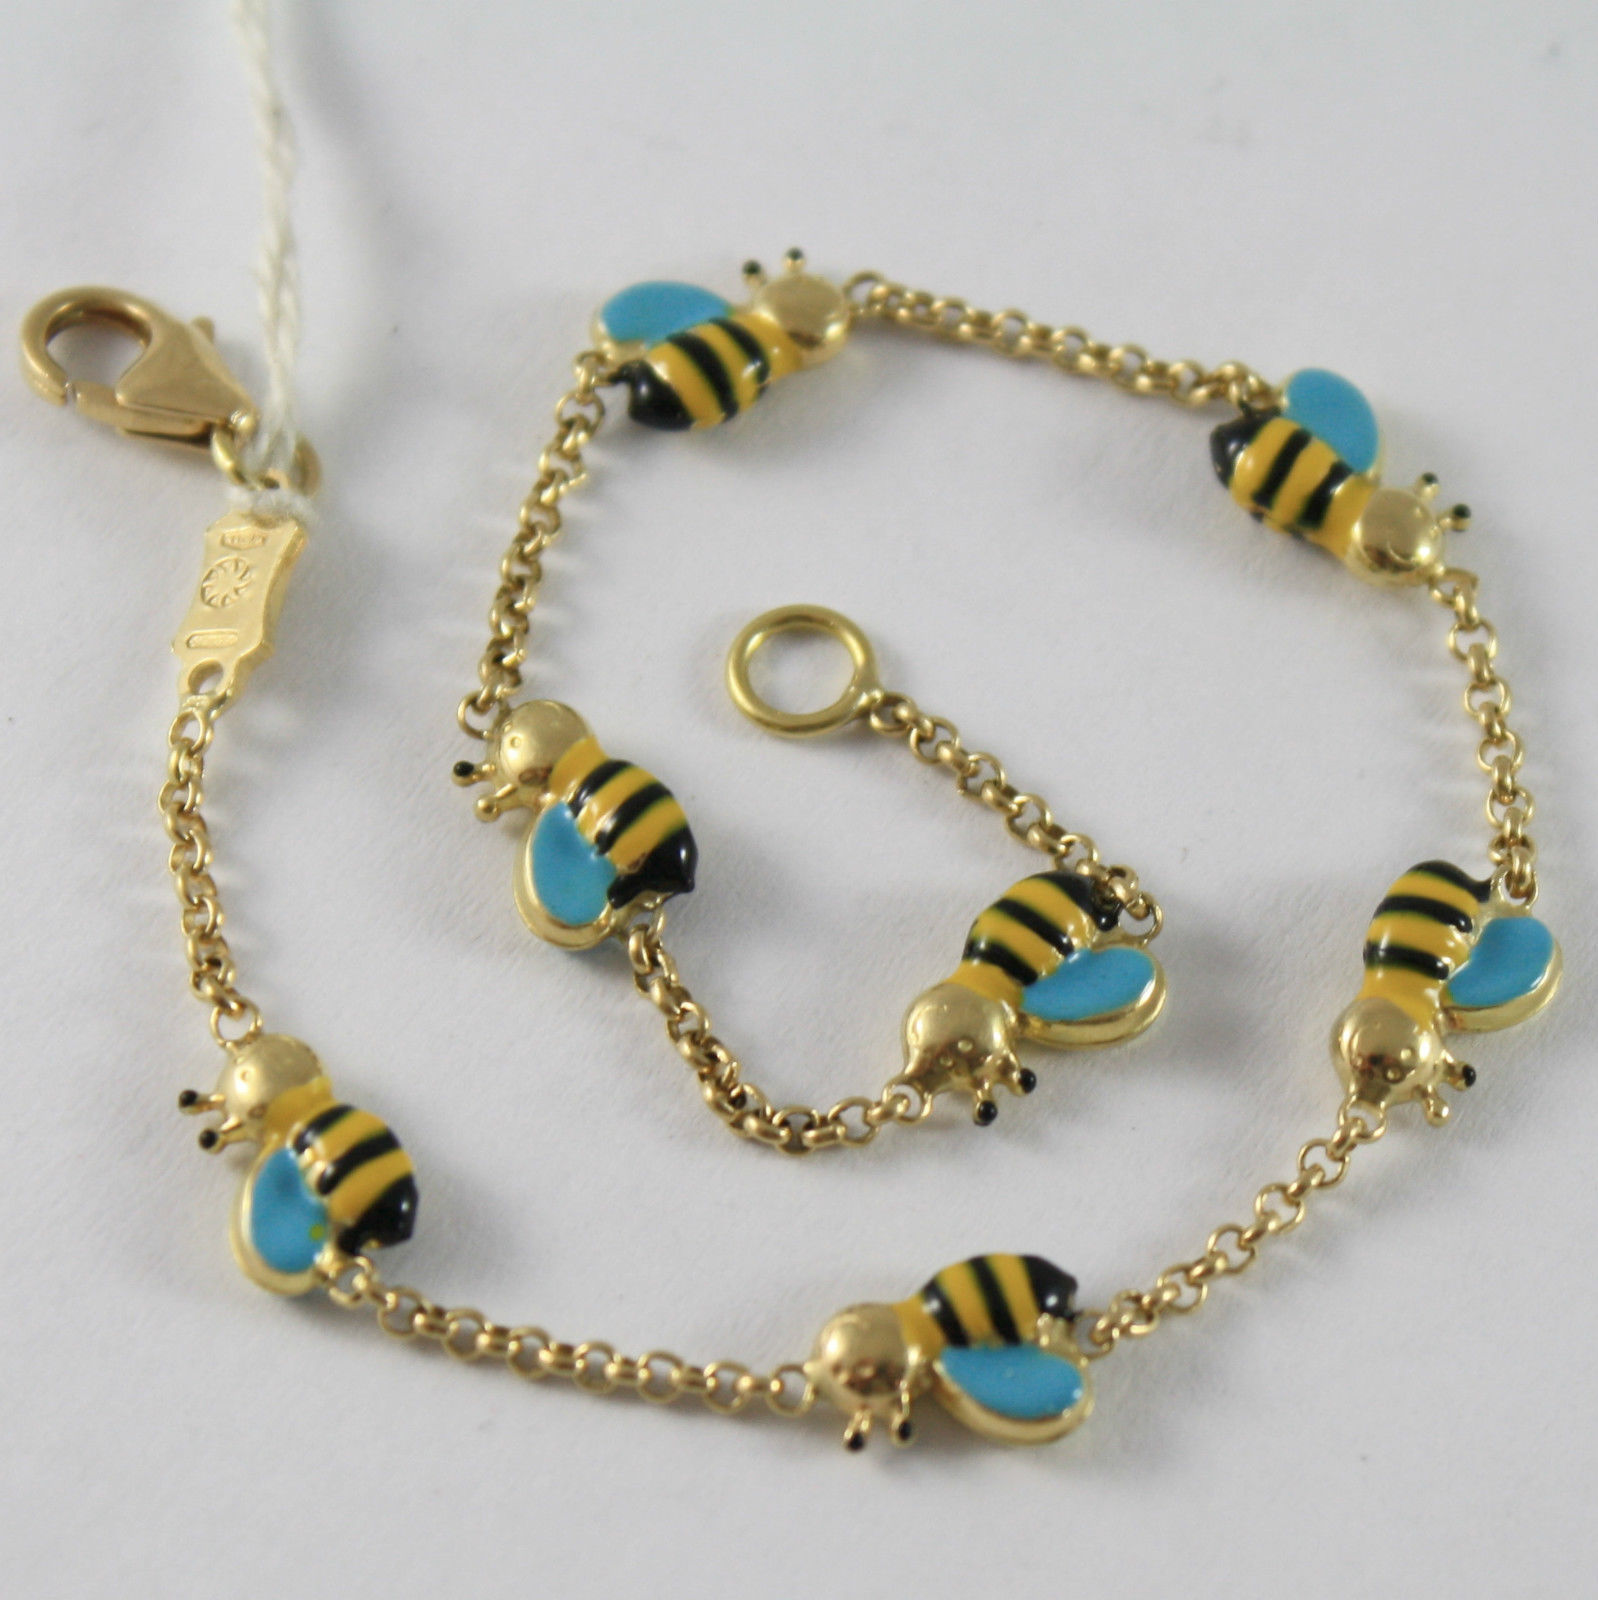 SOLID 18K YELLOW GOLD BRACELET, BEE SMILING BEE WITH GLAZE, MADE IN ITALY